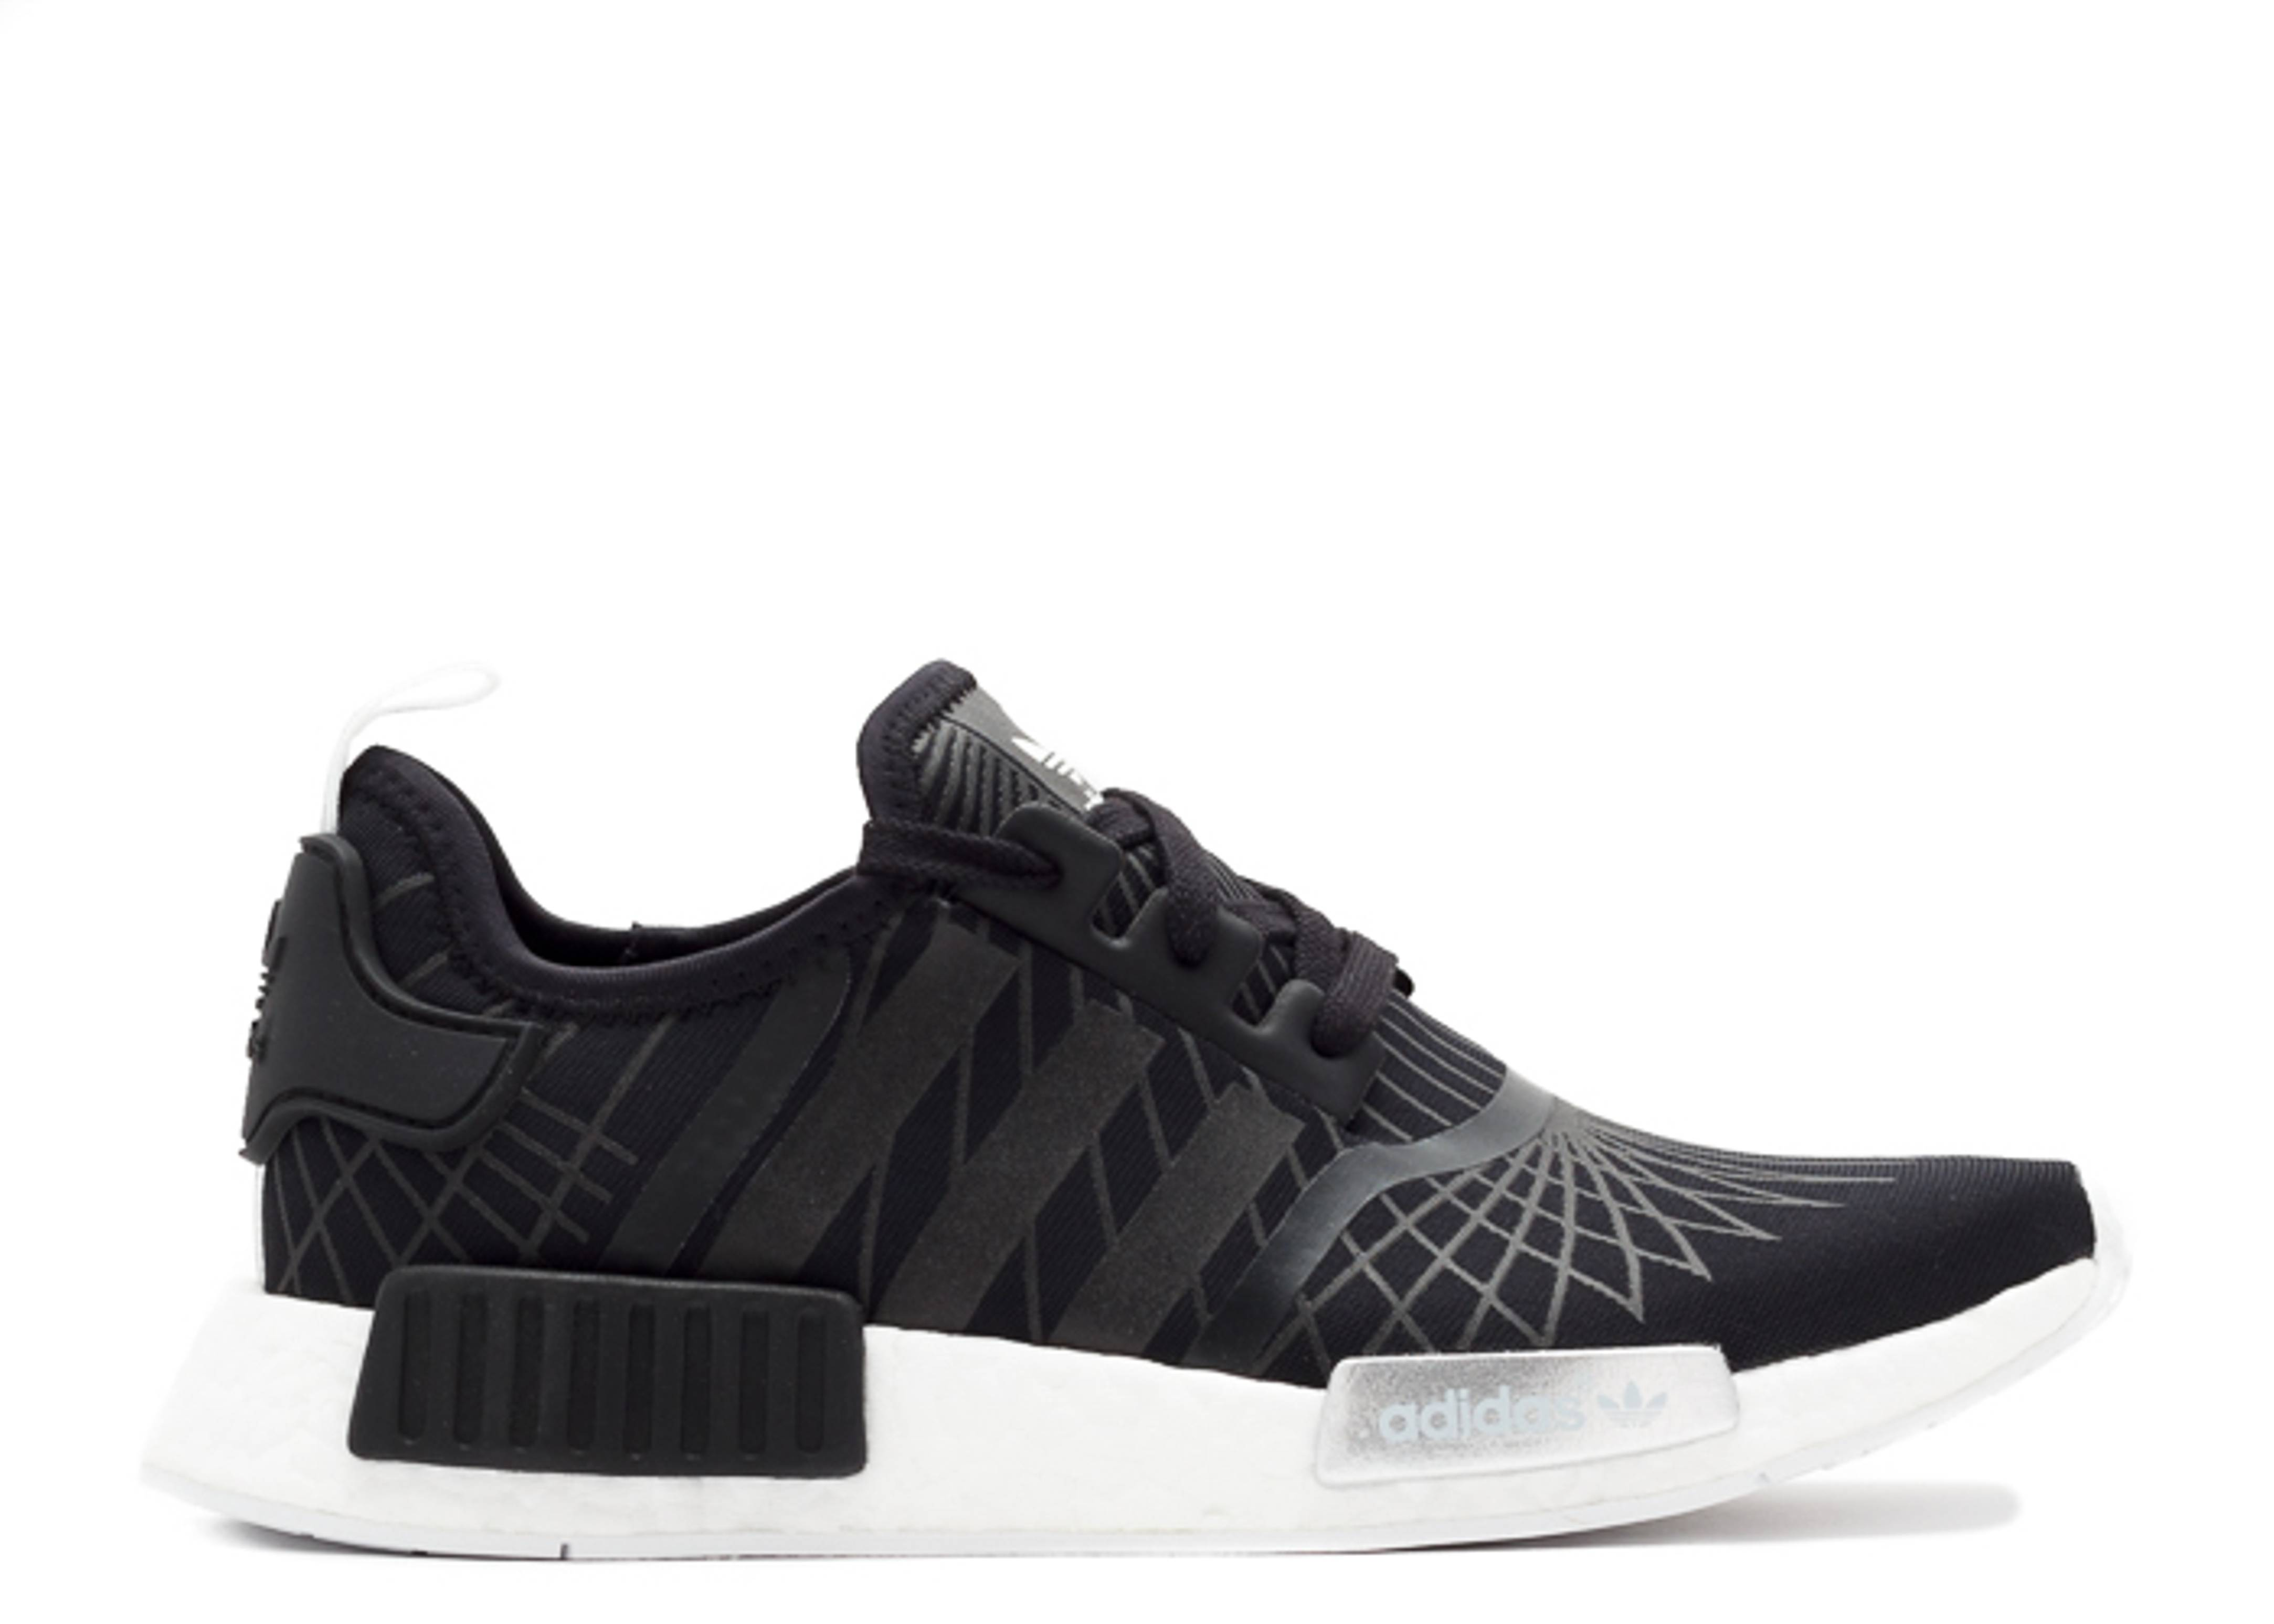 new concept huge inventory new high quality Nmd Runner W - Adidas - s79386 - black/white-silver   Flight Club